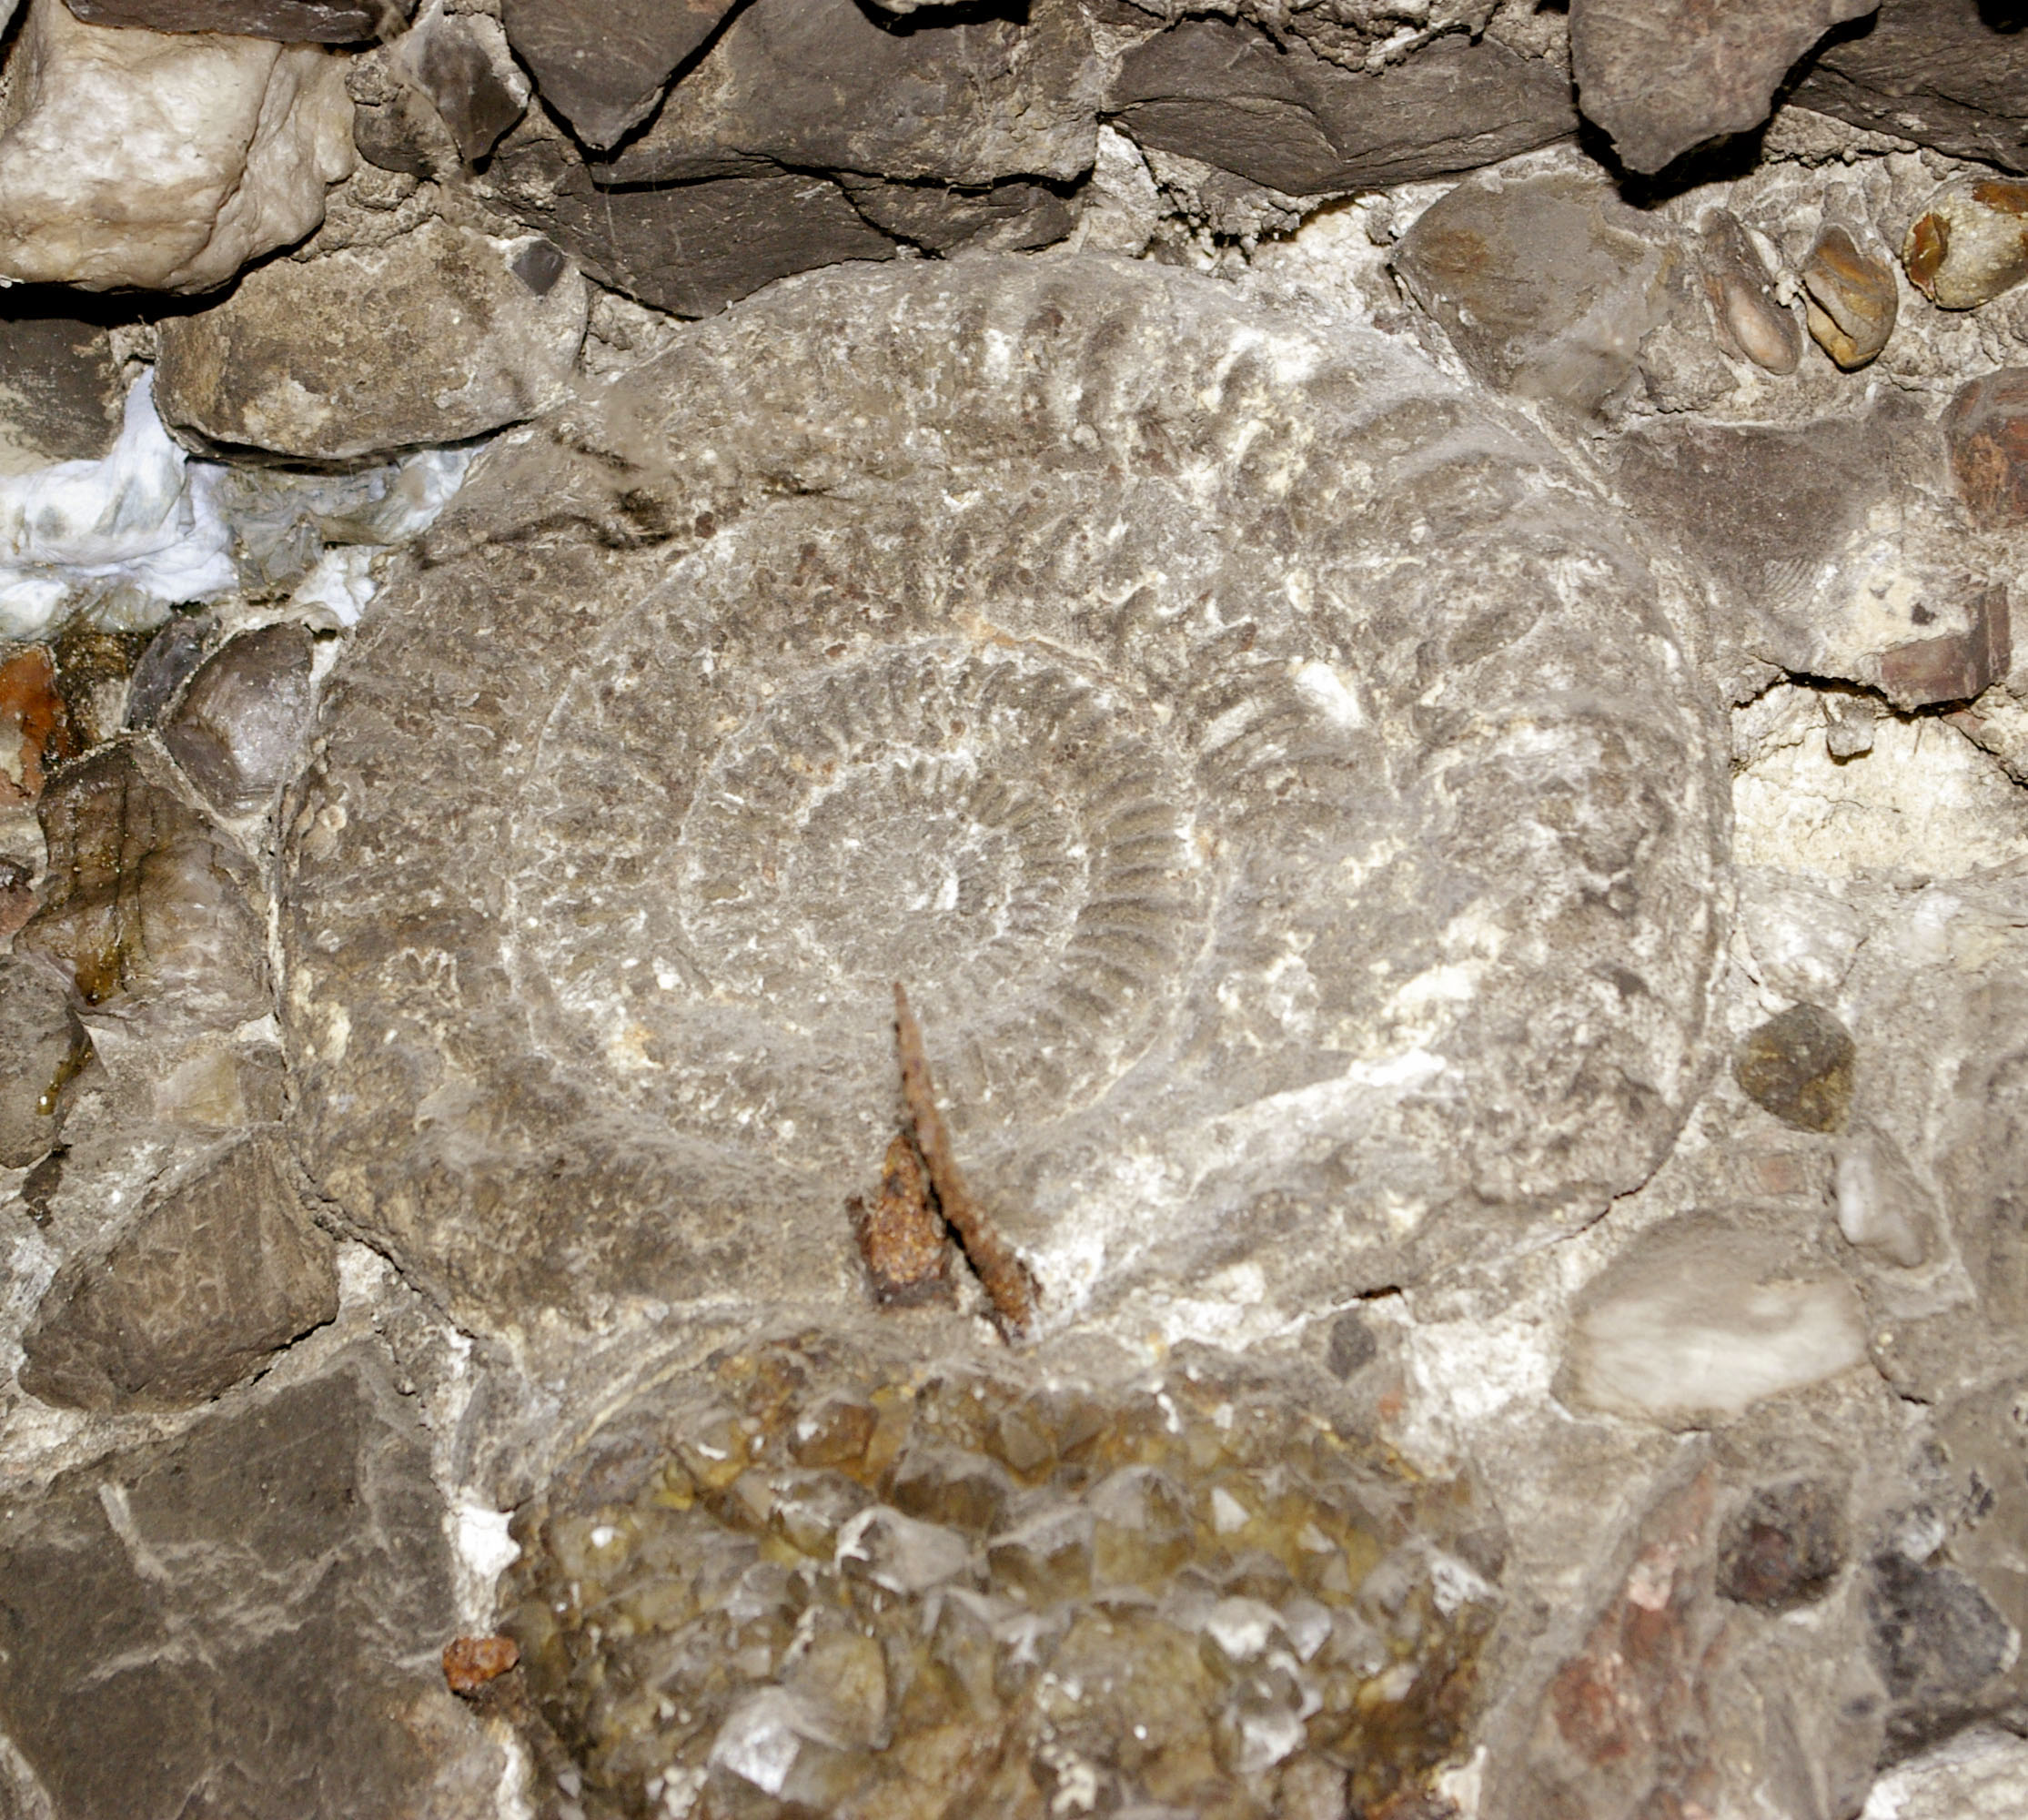 One of the ammonite casts in the Gallery